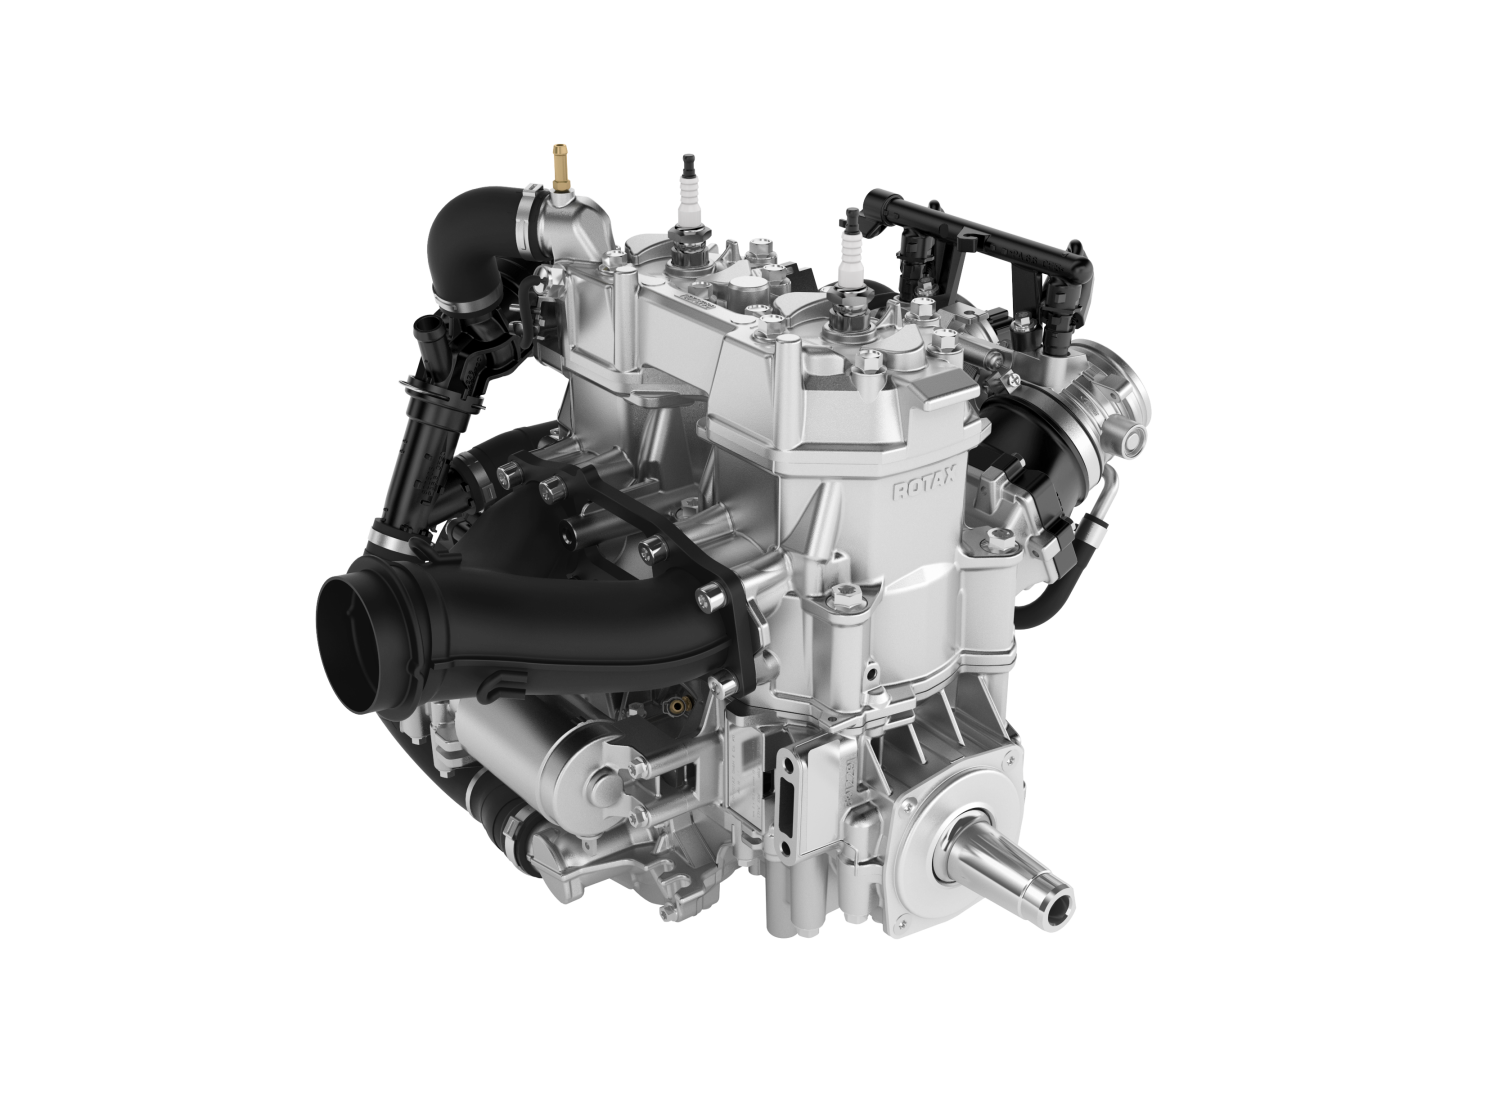 Rotax 600 EFI - Snowmobile engine for Ski-Doo